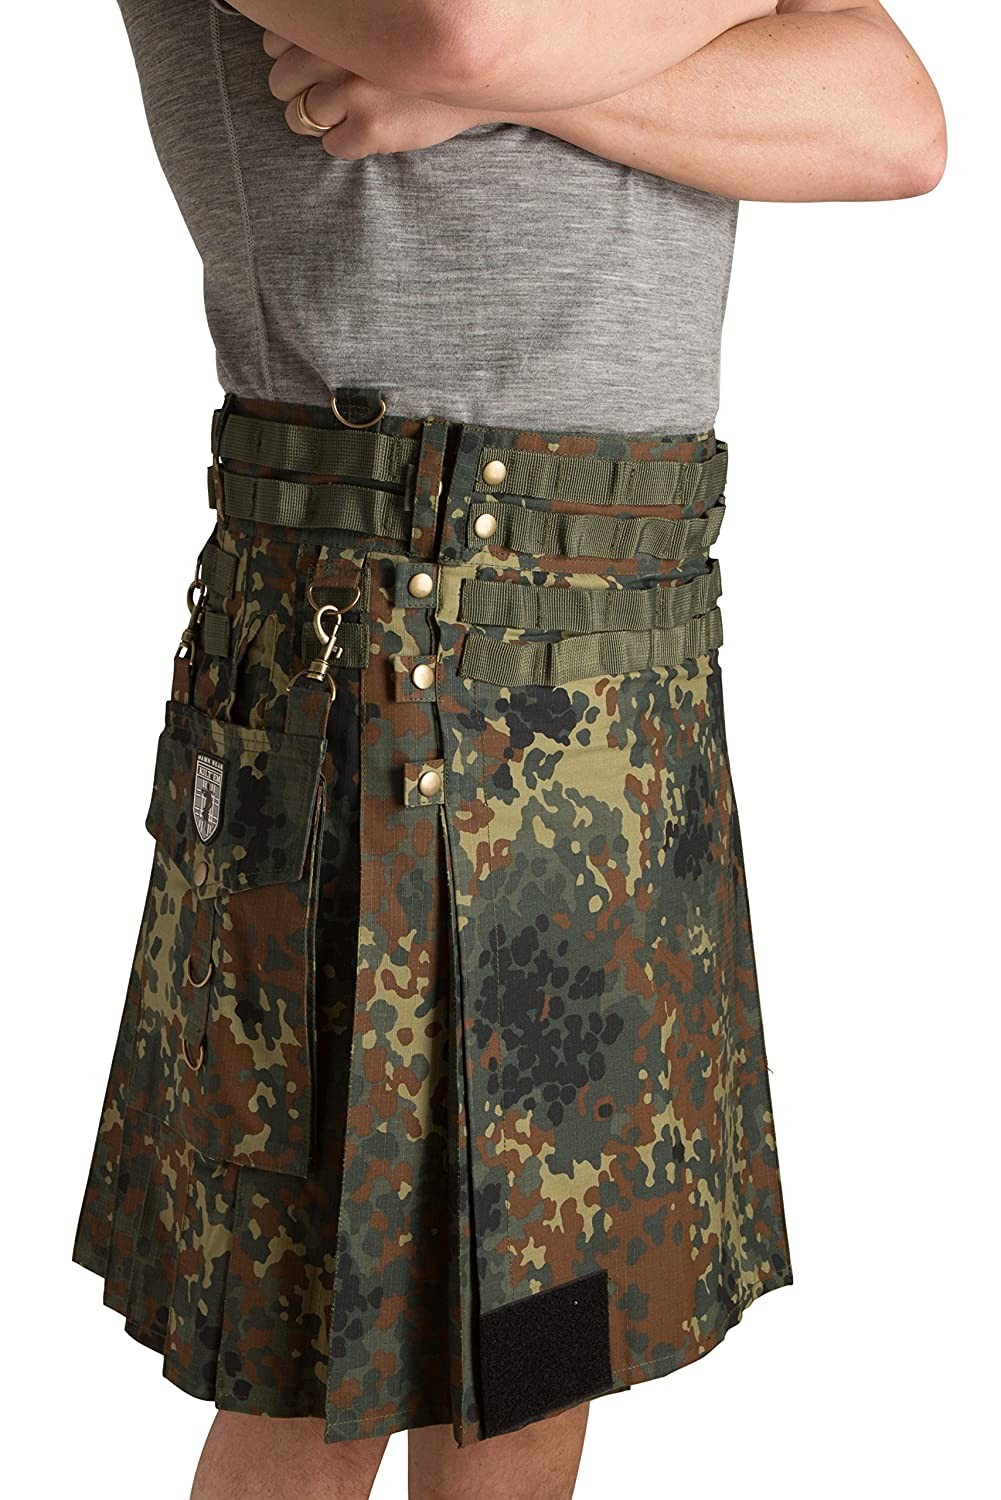 Damn Near Kilt 'Em SHORTS メンズ B01GITHLJ4 Small|Flecktarn Flecktarn Small